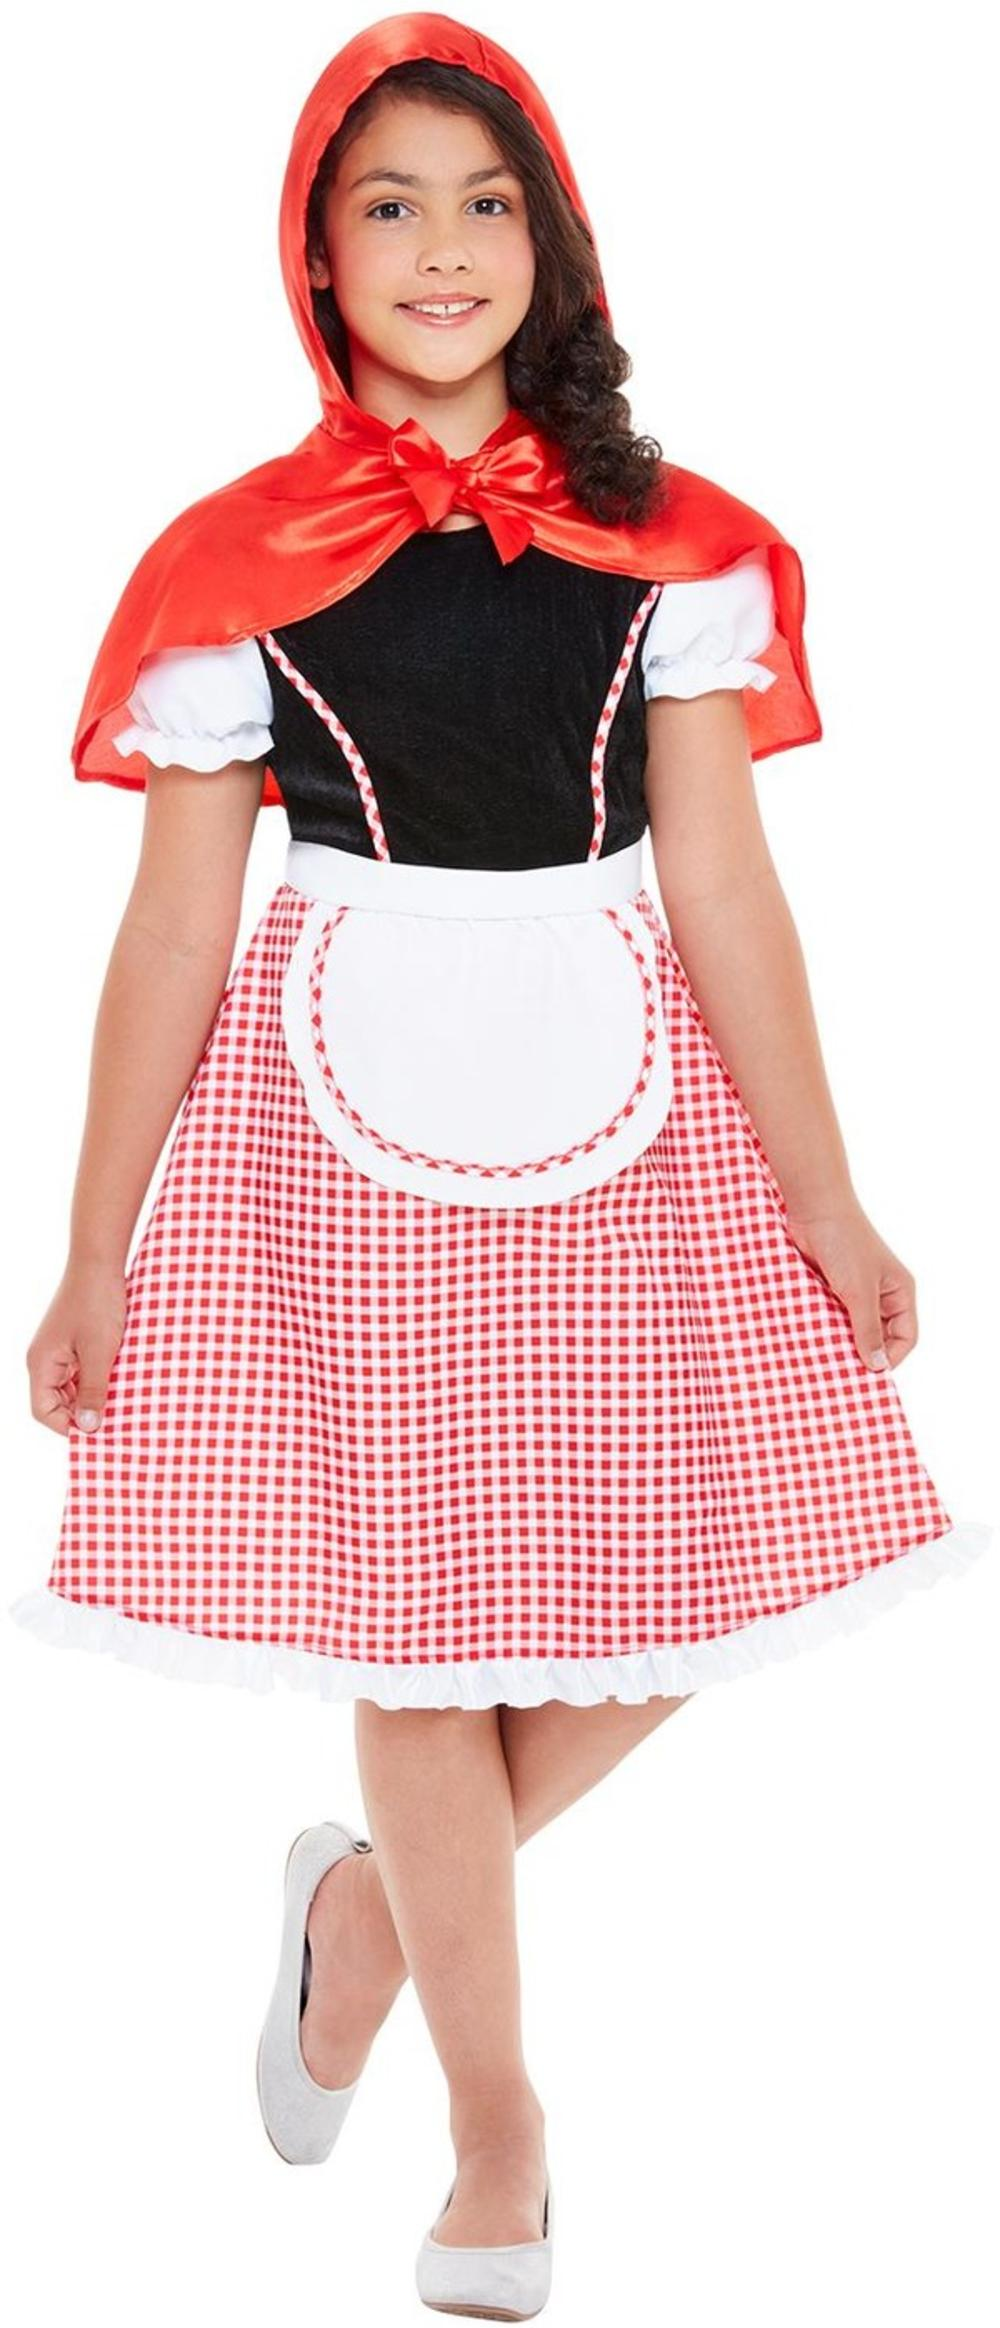 Red Riding Hood Girls Fancy Dress Fairy Tale Kids World Book Day Costume Outfit